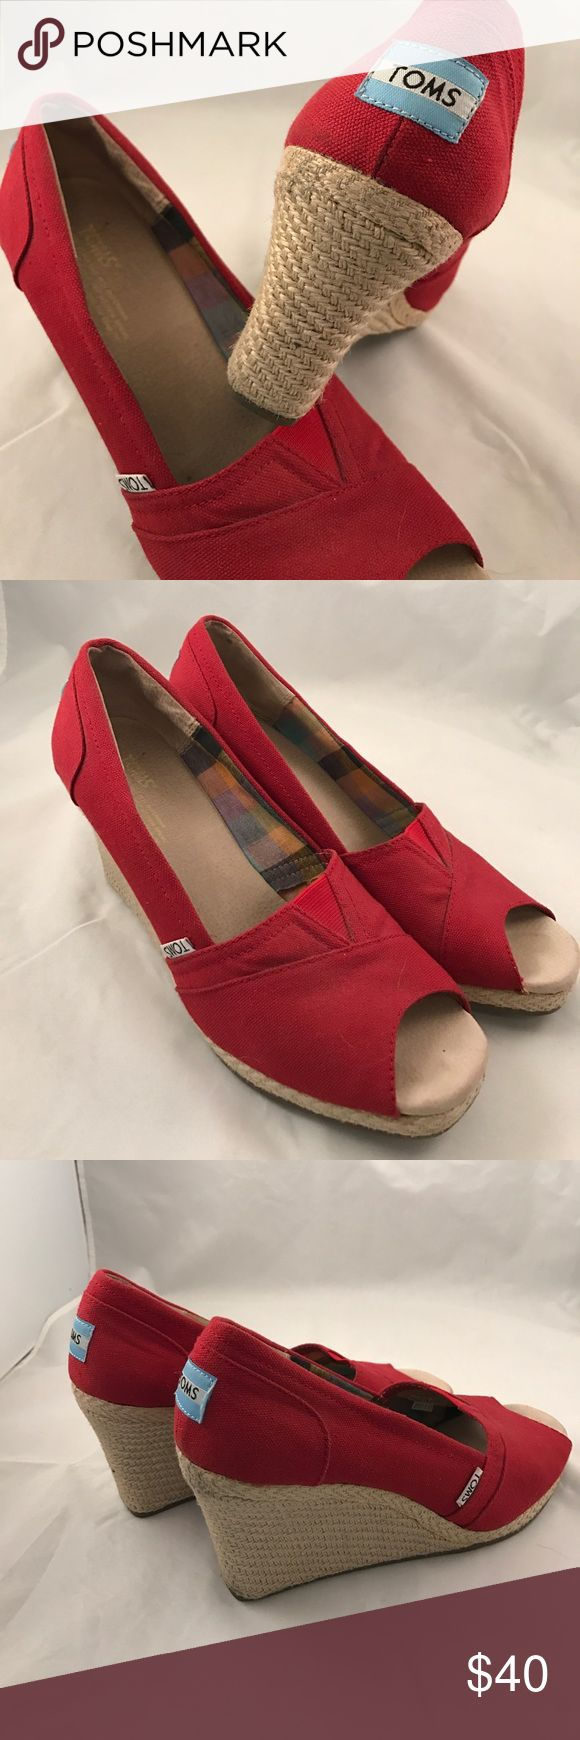 Toms Red Wedge Heels Size 9 Toms Wedge Heel Size 9 Red Canvas TOMS Shoes Wedges